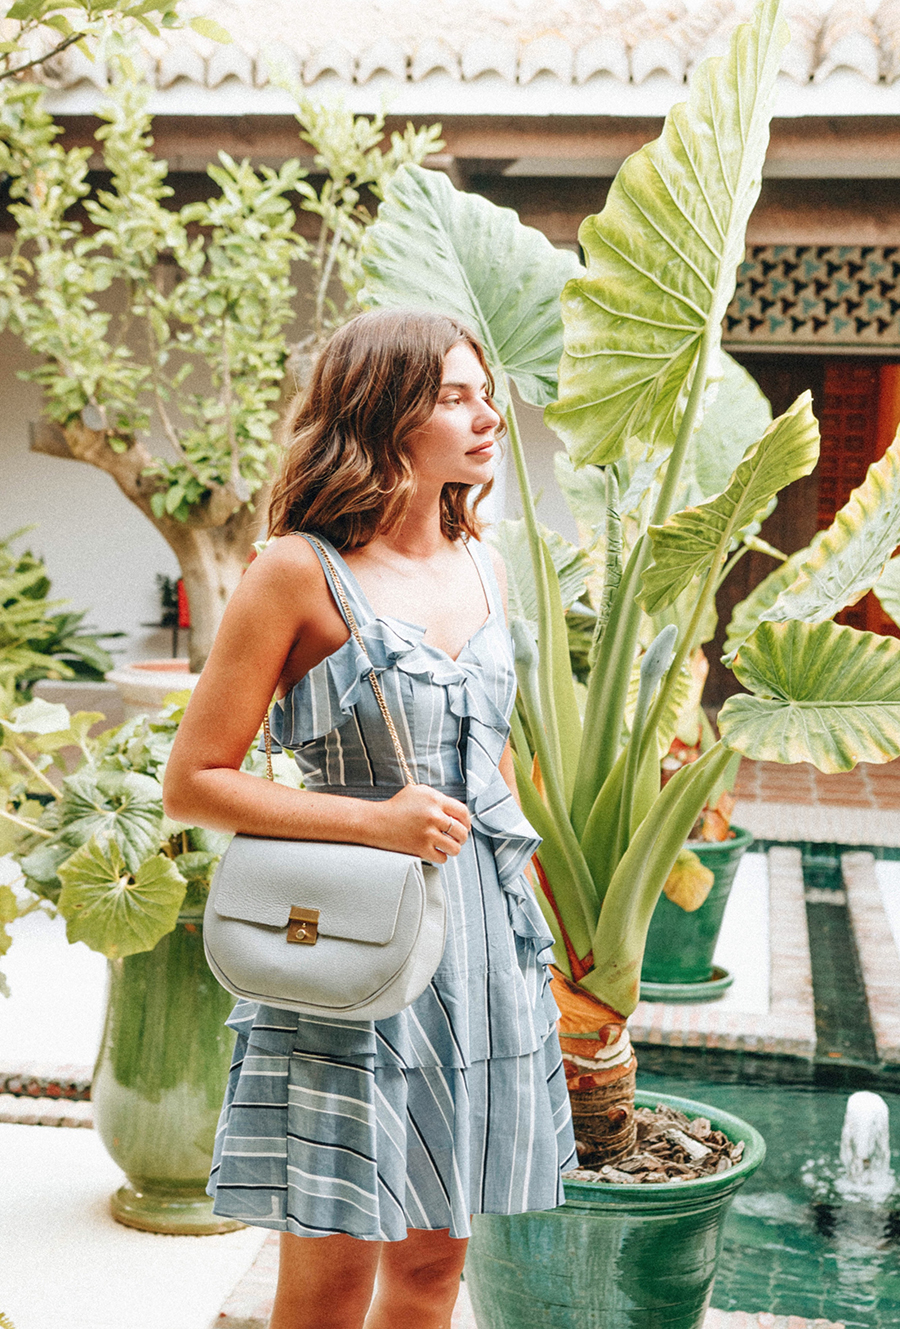 Recently,   This Is Glamorous   Fashion Editor  Victoria Berezhna  collaborated with up-and-coming photographer Sonnie Hiles for this beautifully lush editorial for Belgrave Crescent featuring the  Saint-Germain-des-Prés in Seacliff . Shot on location in Sotogrande, Spain, against a backdrop of bright colours and bougainvillea, the result was pure summer love ...